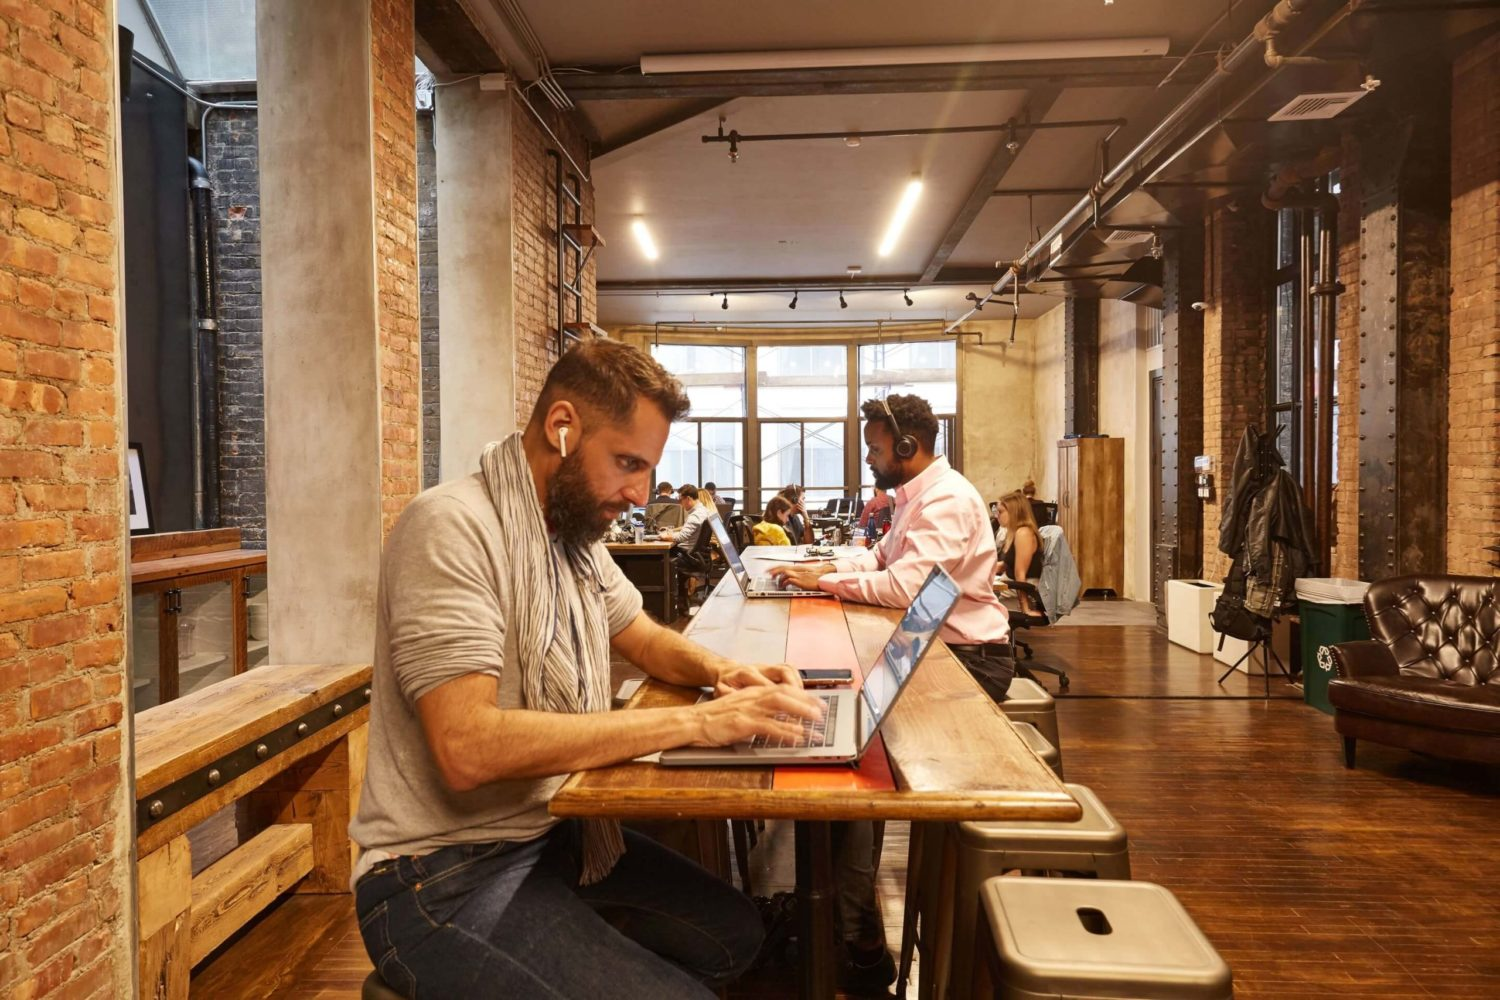 Affordable Coworking Space Nyc Dedicated Shared Office Spaces The Farm Soho